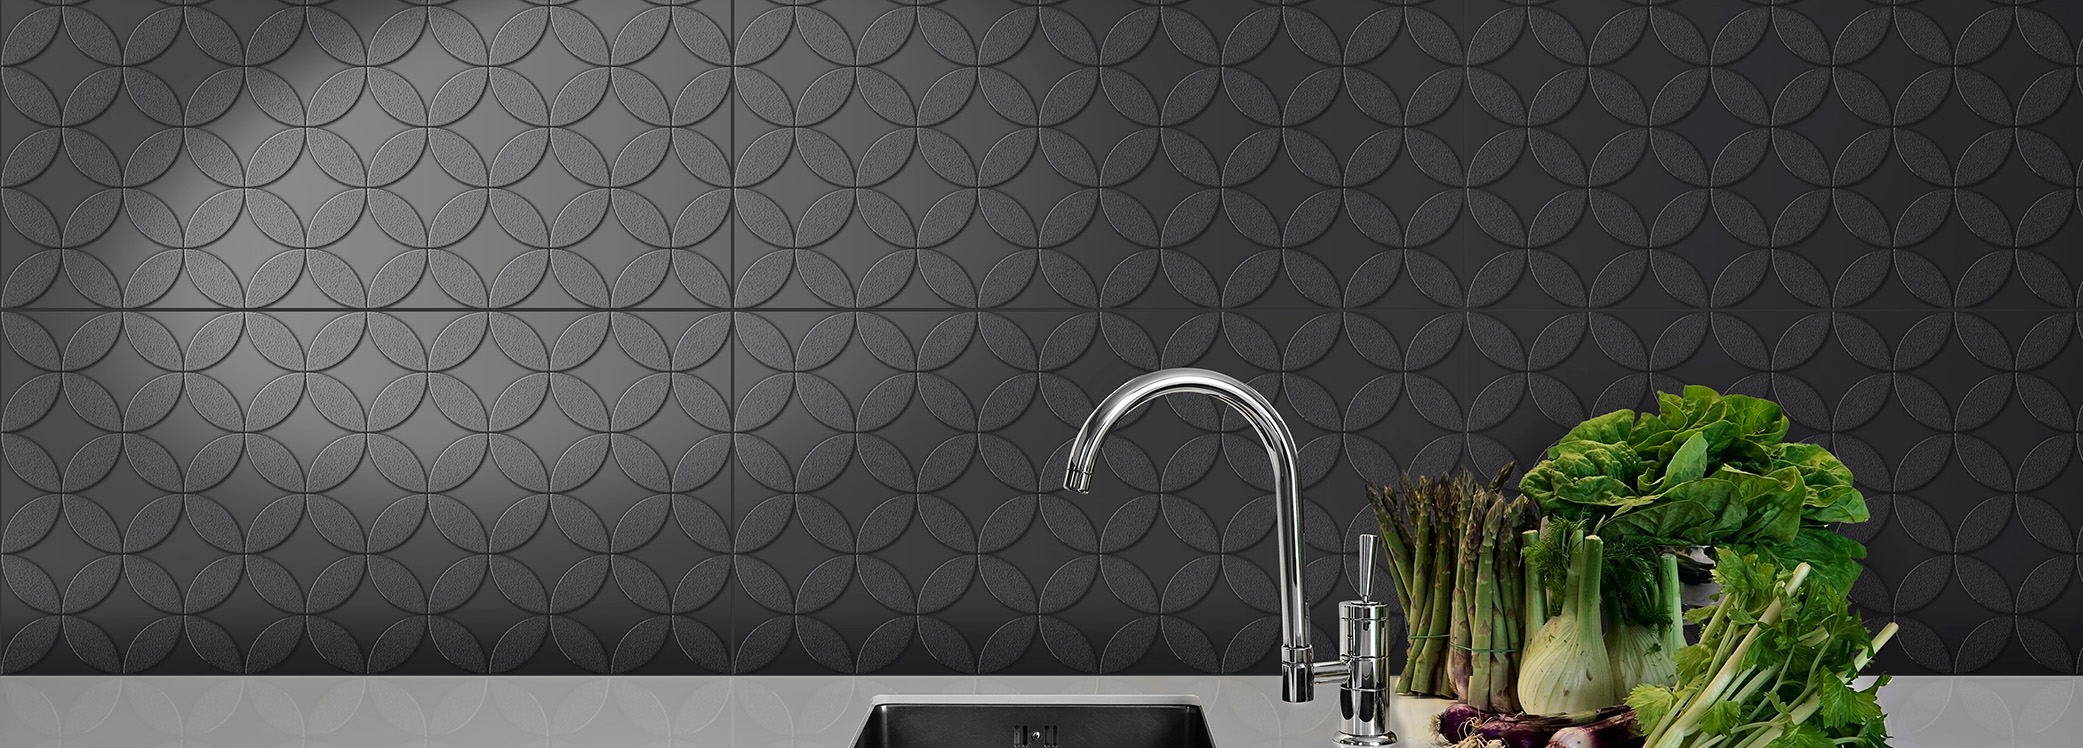 Kitchen Tiles Amp Designs Ceramica Tile Design